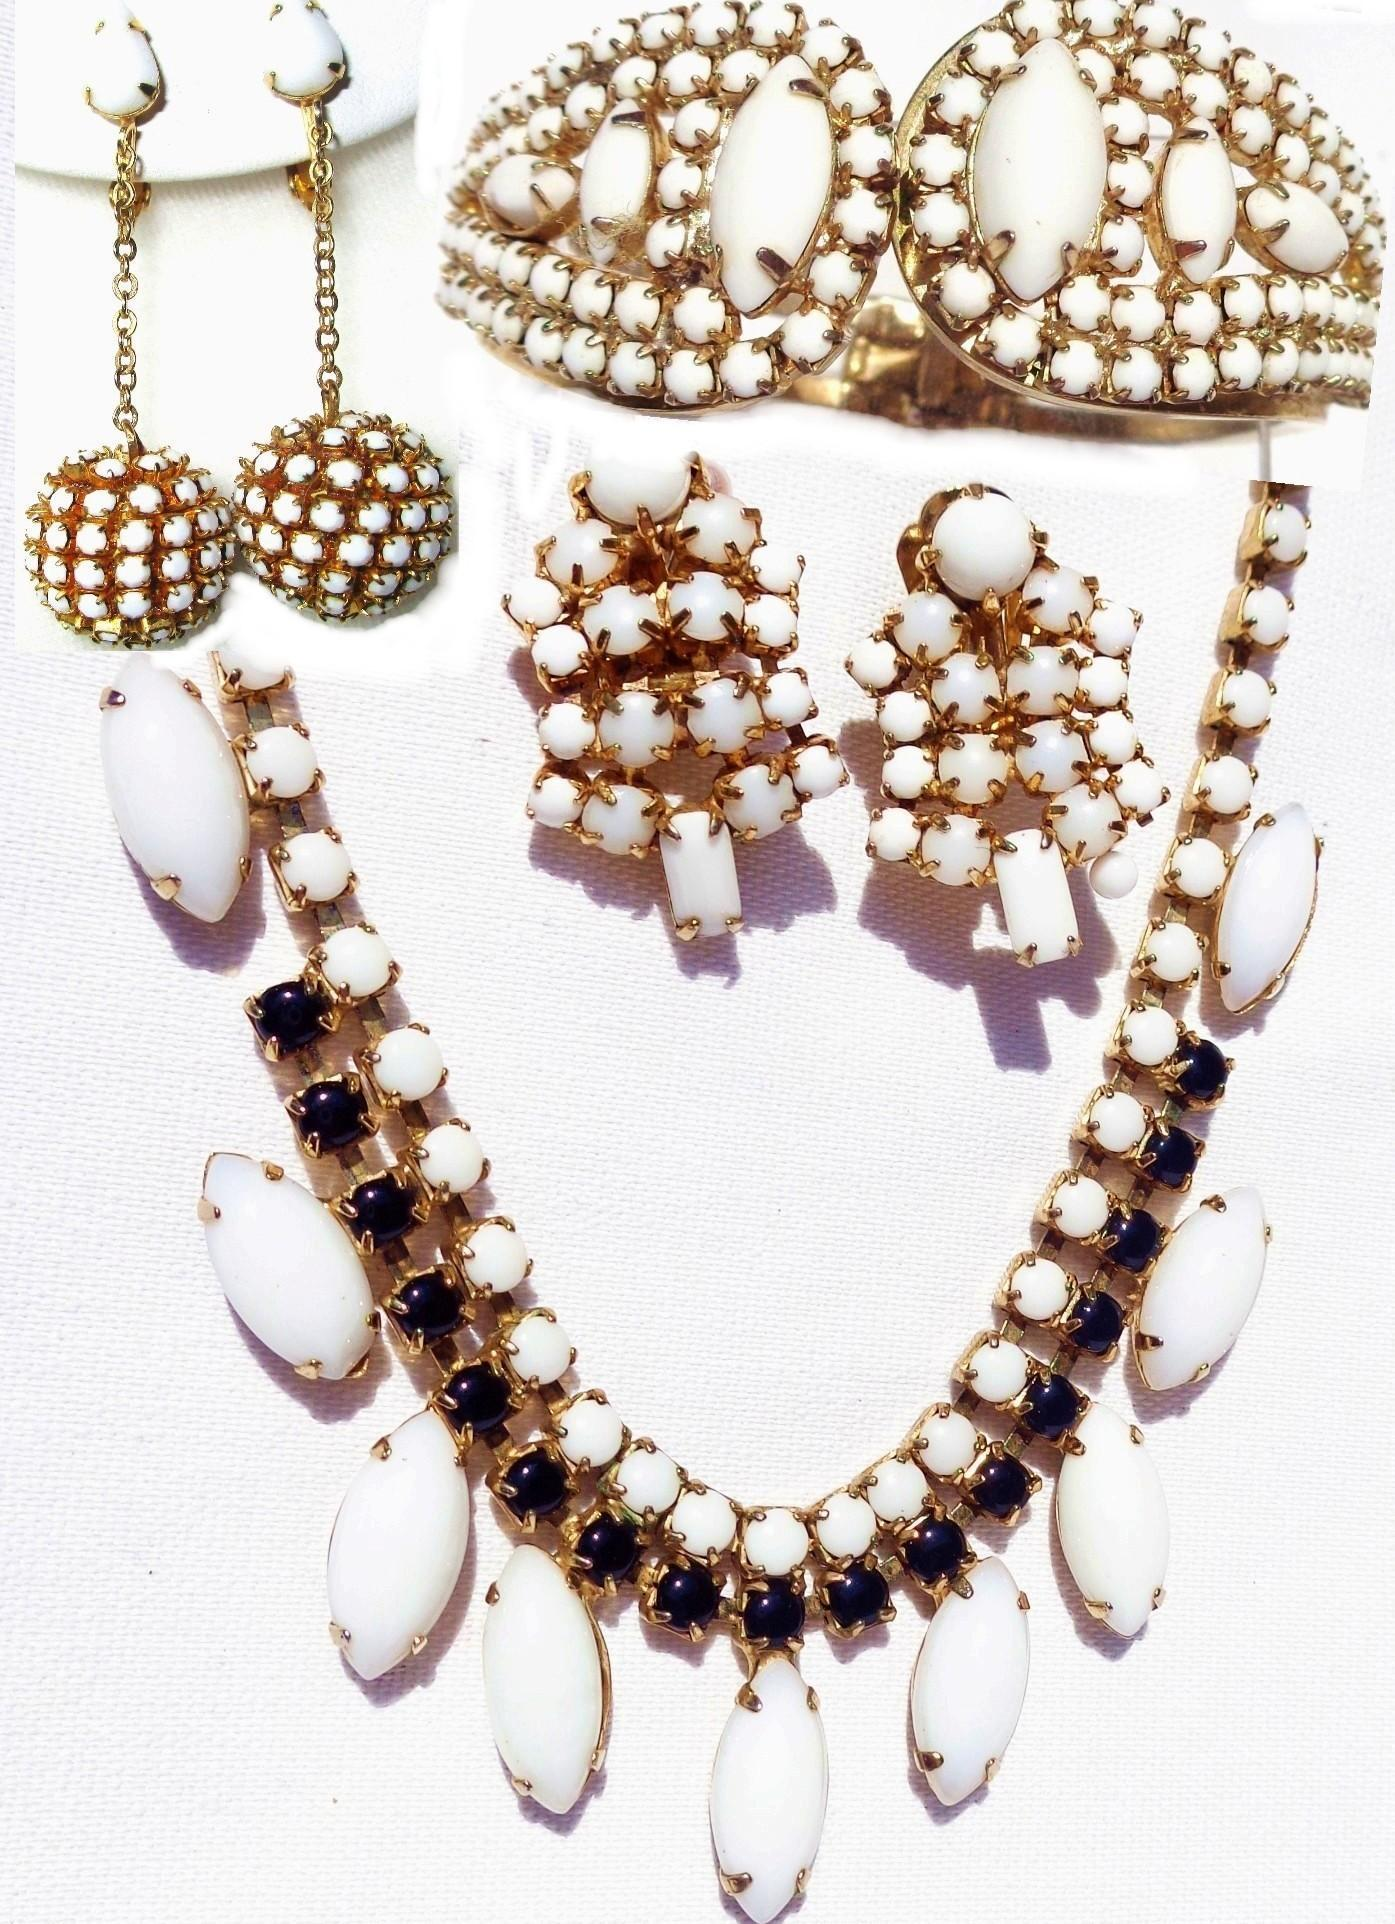 Vintage 3-piece Milk Glass in Gold tone, Necklace, Earrings and Bracelet